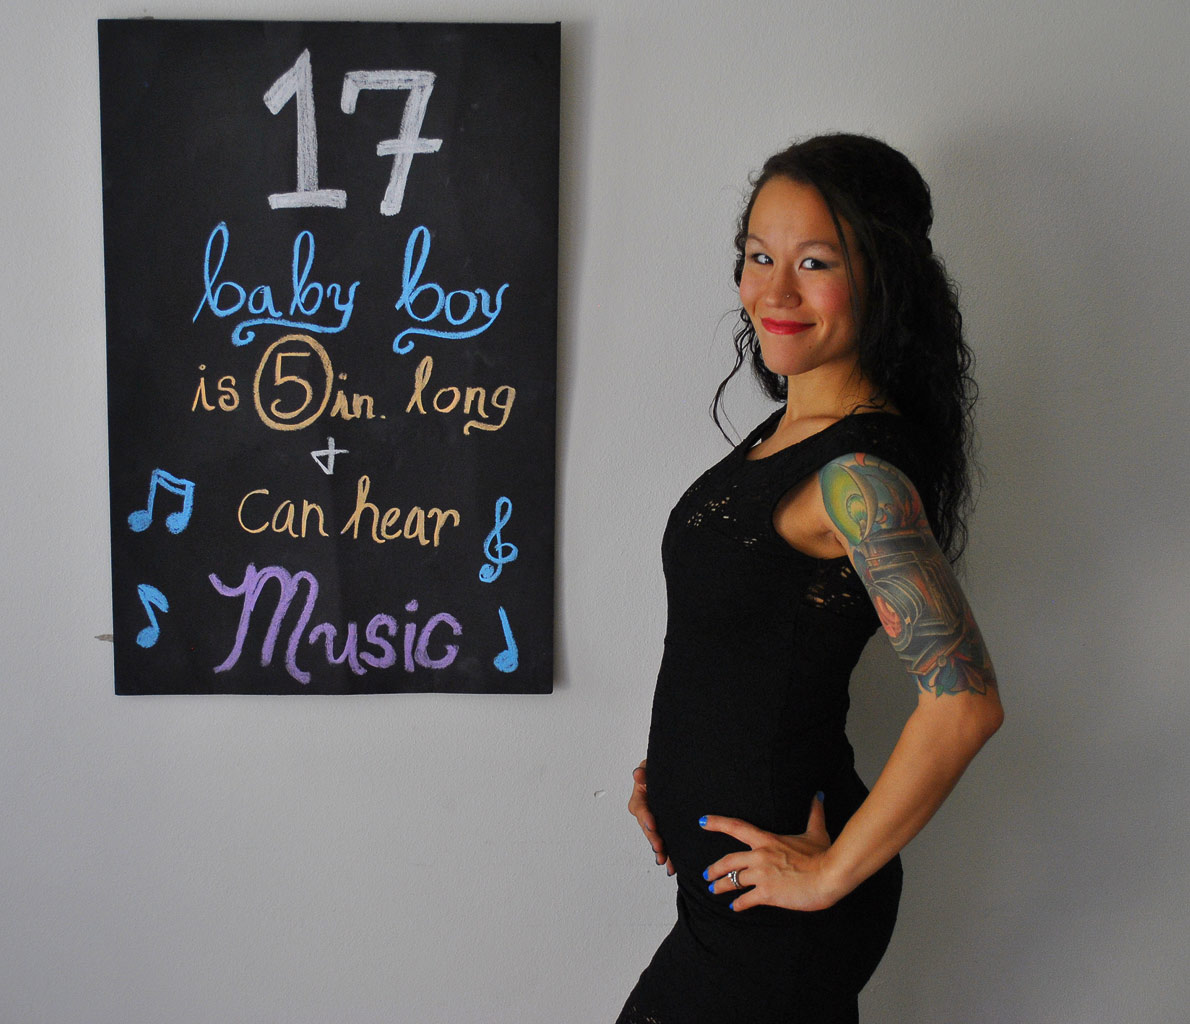 17 weeks pregnant – The Maternity Gallery